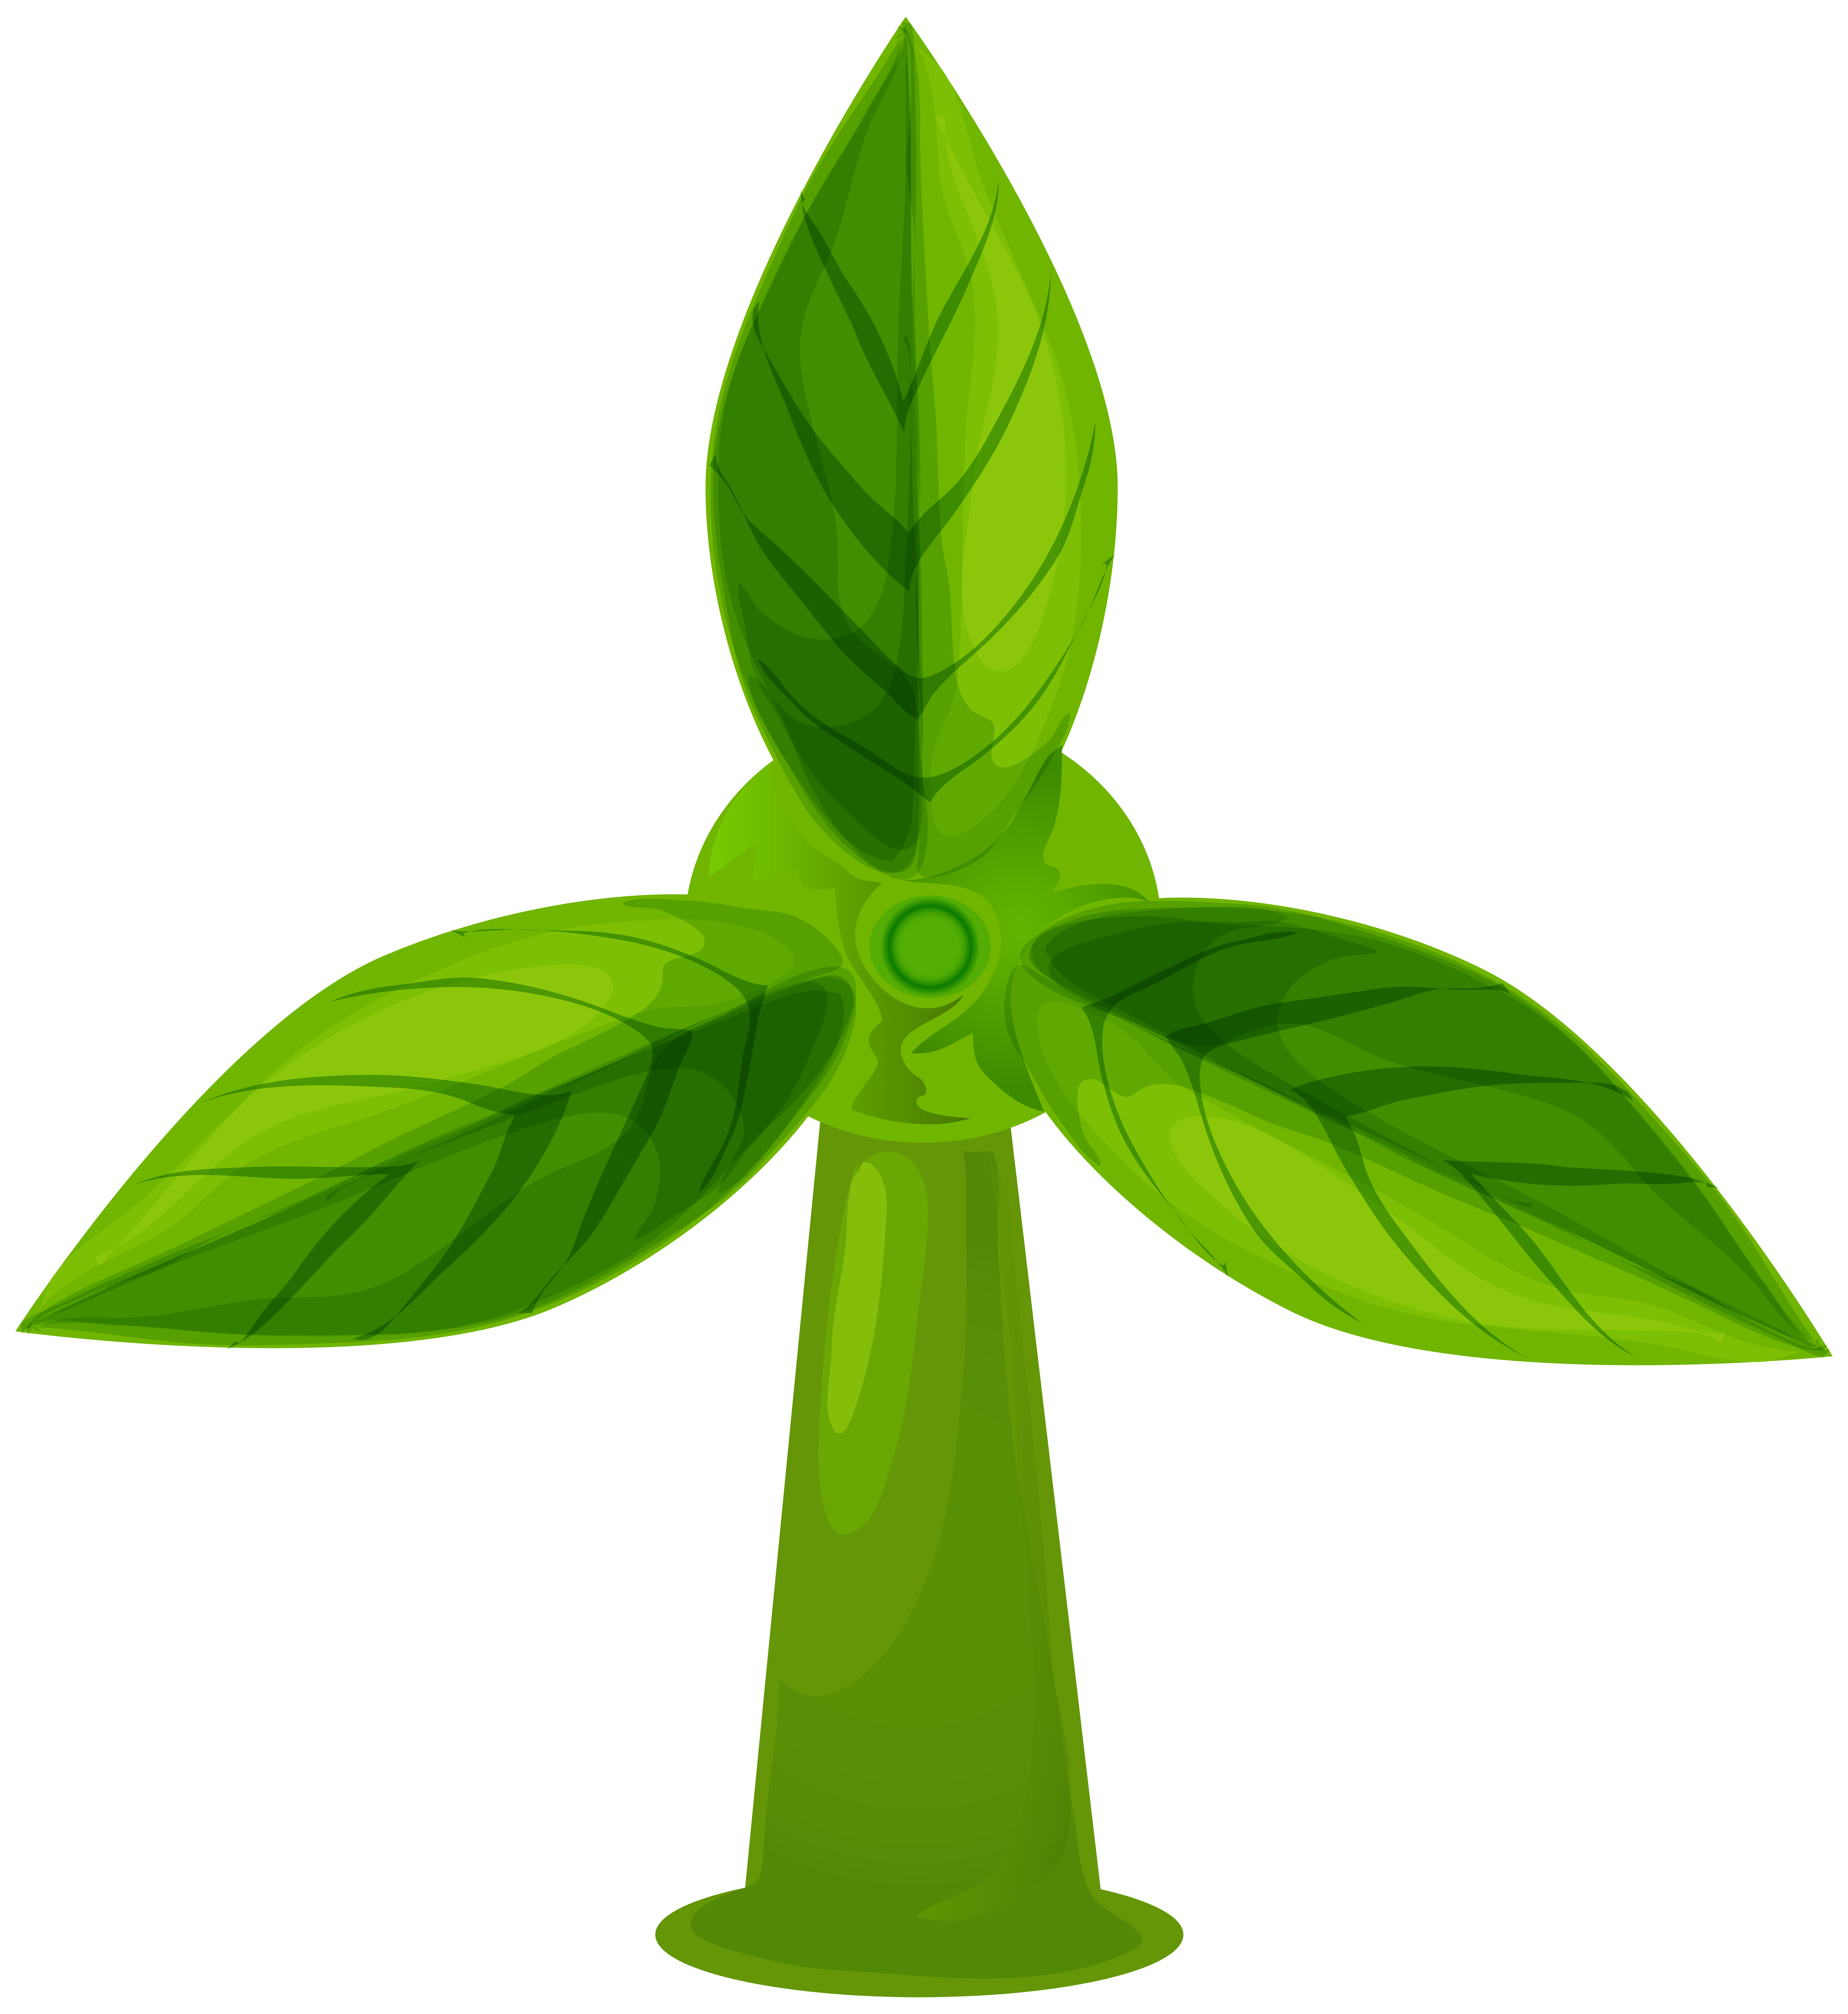 Windy clipart emoji. Green wind turbine png